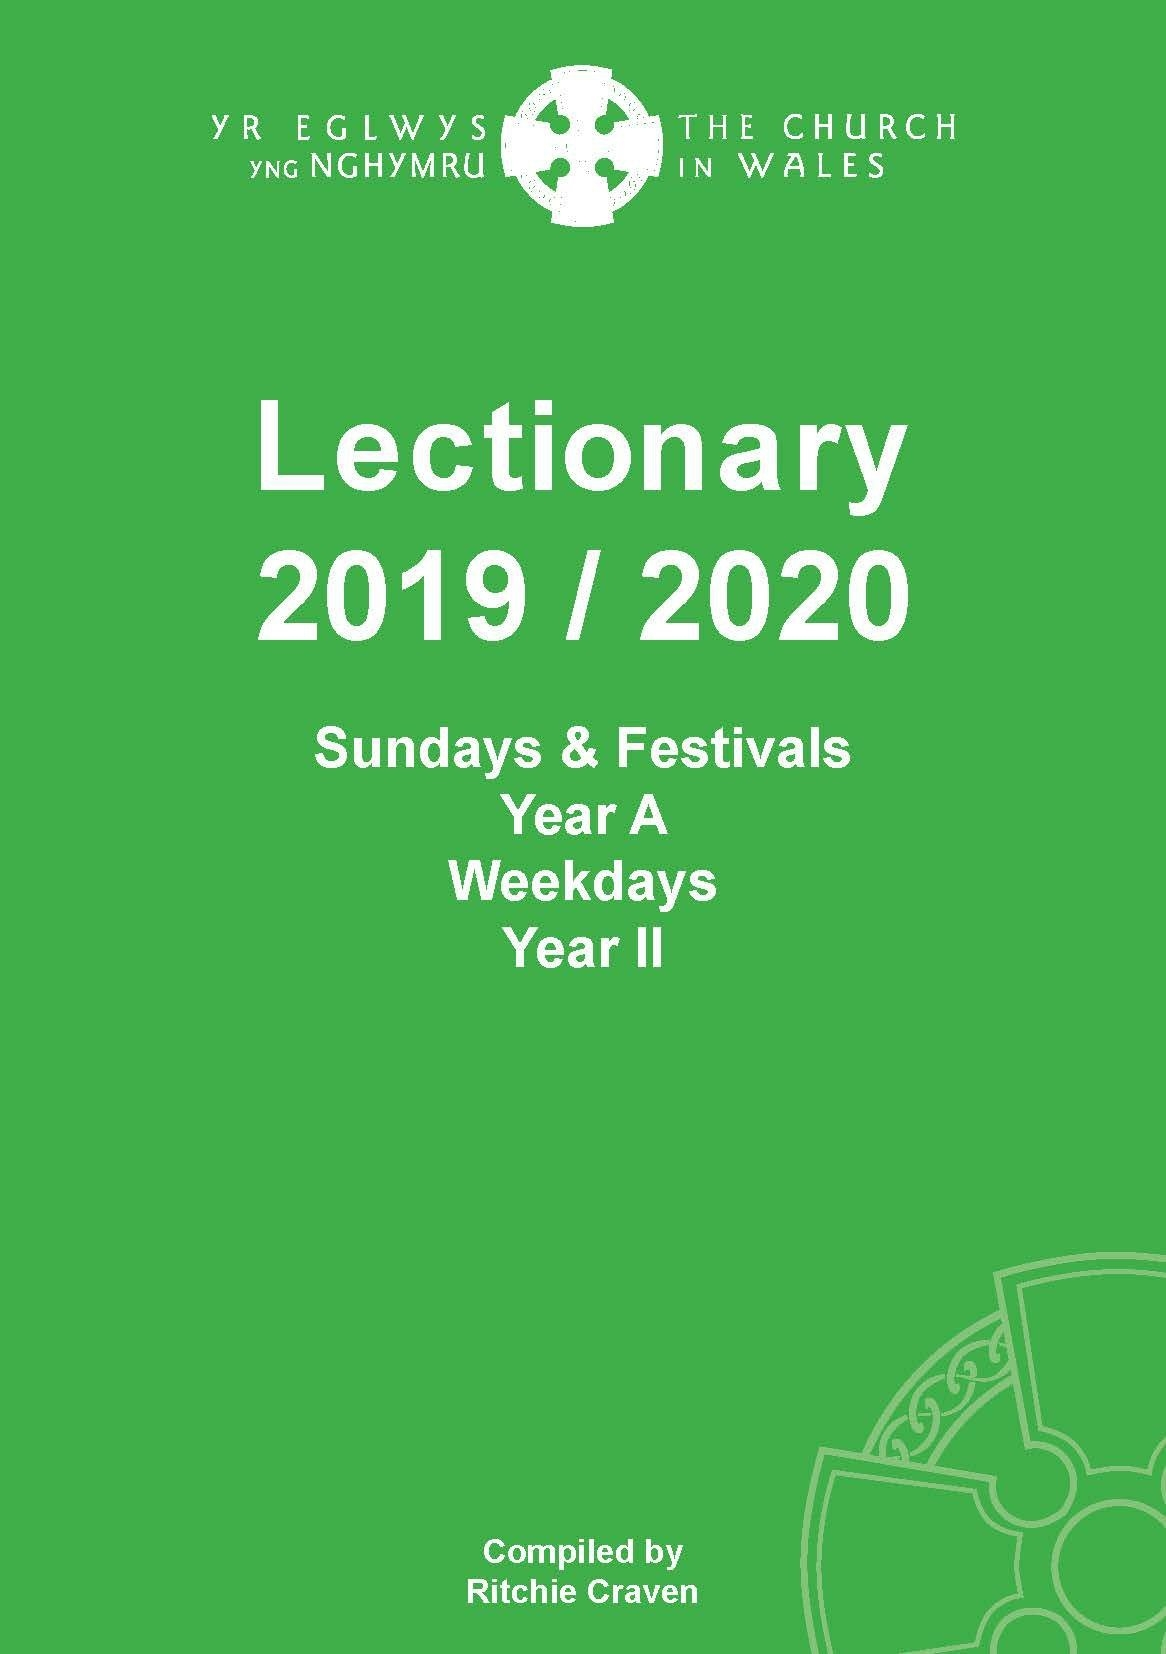 Lectionary - A - The Church In Wales  The Lectionary 2020